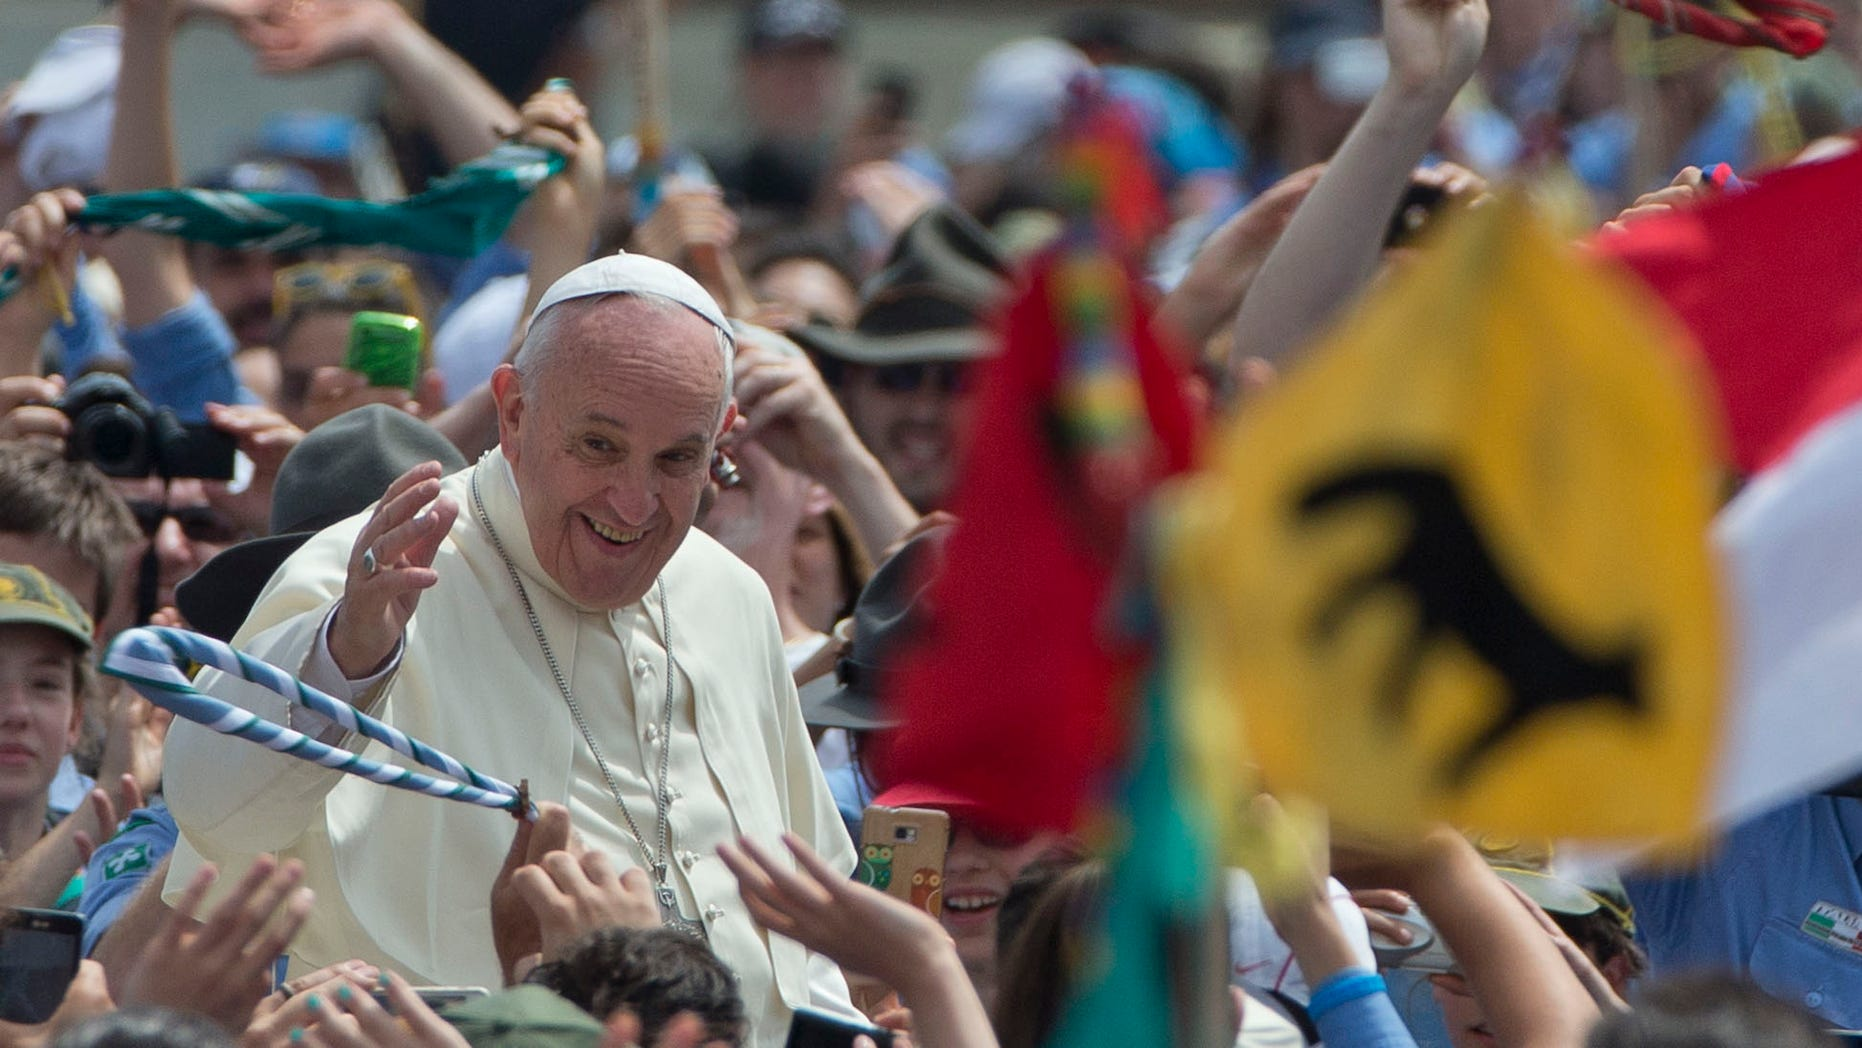 Pope Francis is cheered by the crowd as he arrives for an audience with Italian AGESCI boy scouts association's members in St. Peter's Square at the Vatican, Saturday, June 13, 2015. (AP Photo/Alessandra Tarantino)